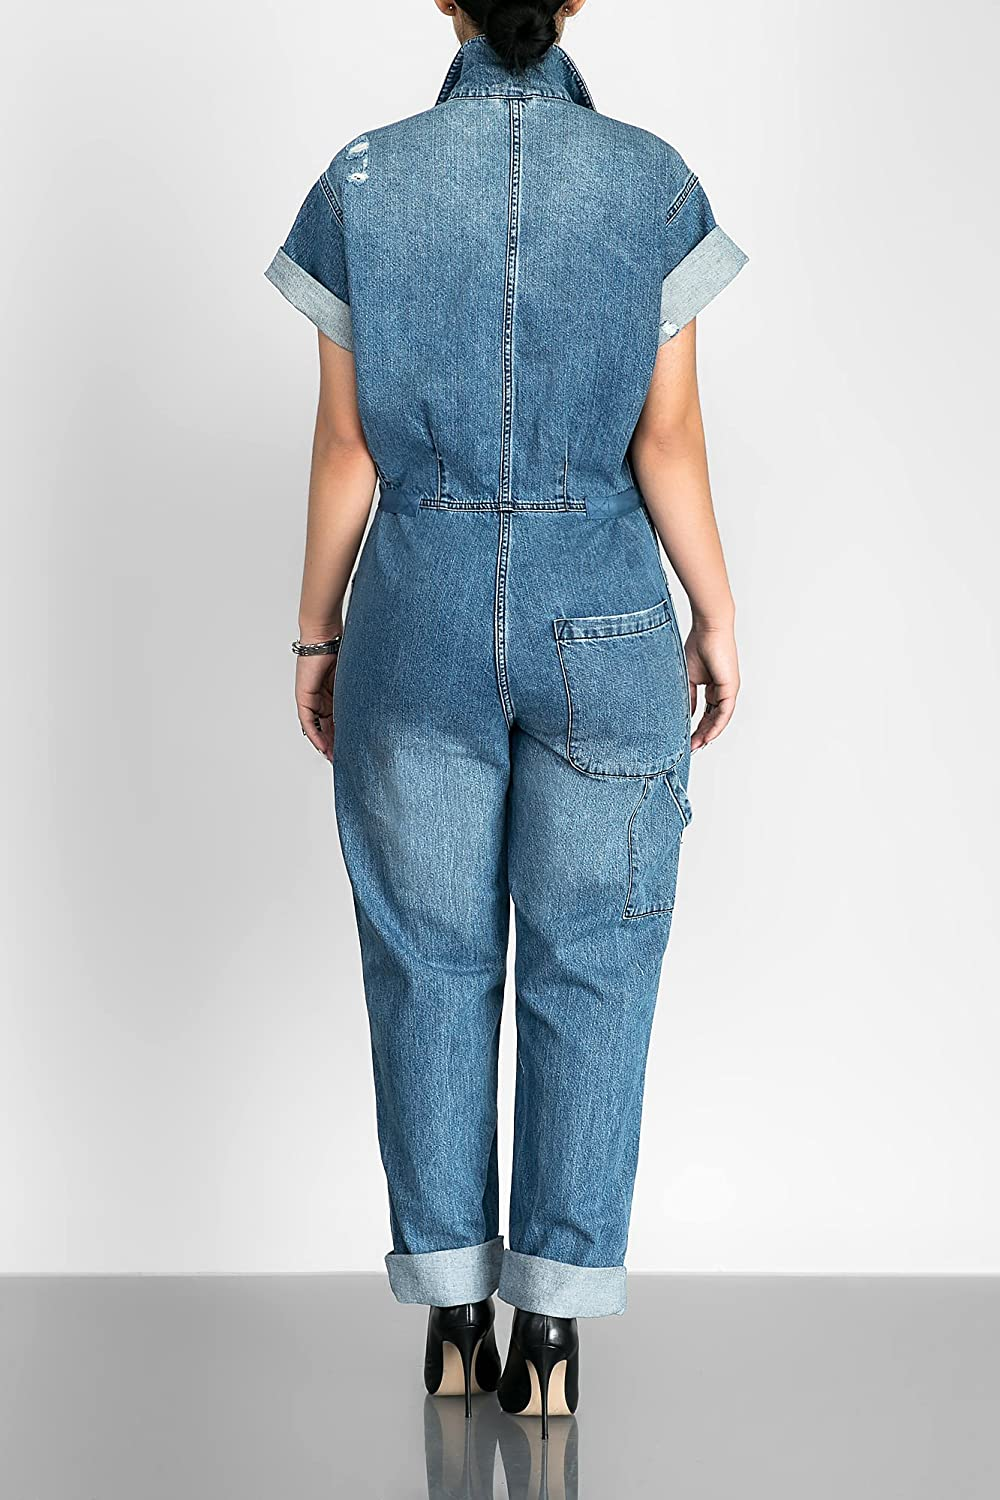 b2060c1c8f3 Amazon.com  Lovaru Women s Short Sleeve Boyfriend Ripped Button Down Loose Denim  Jumpsuit With Pockets  Clothing